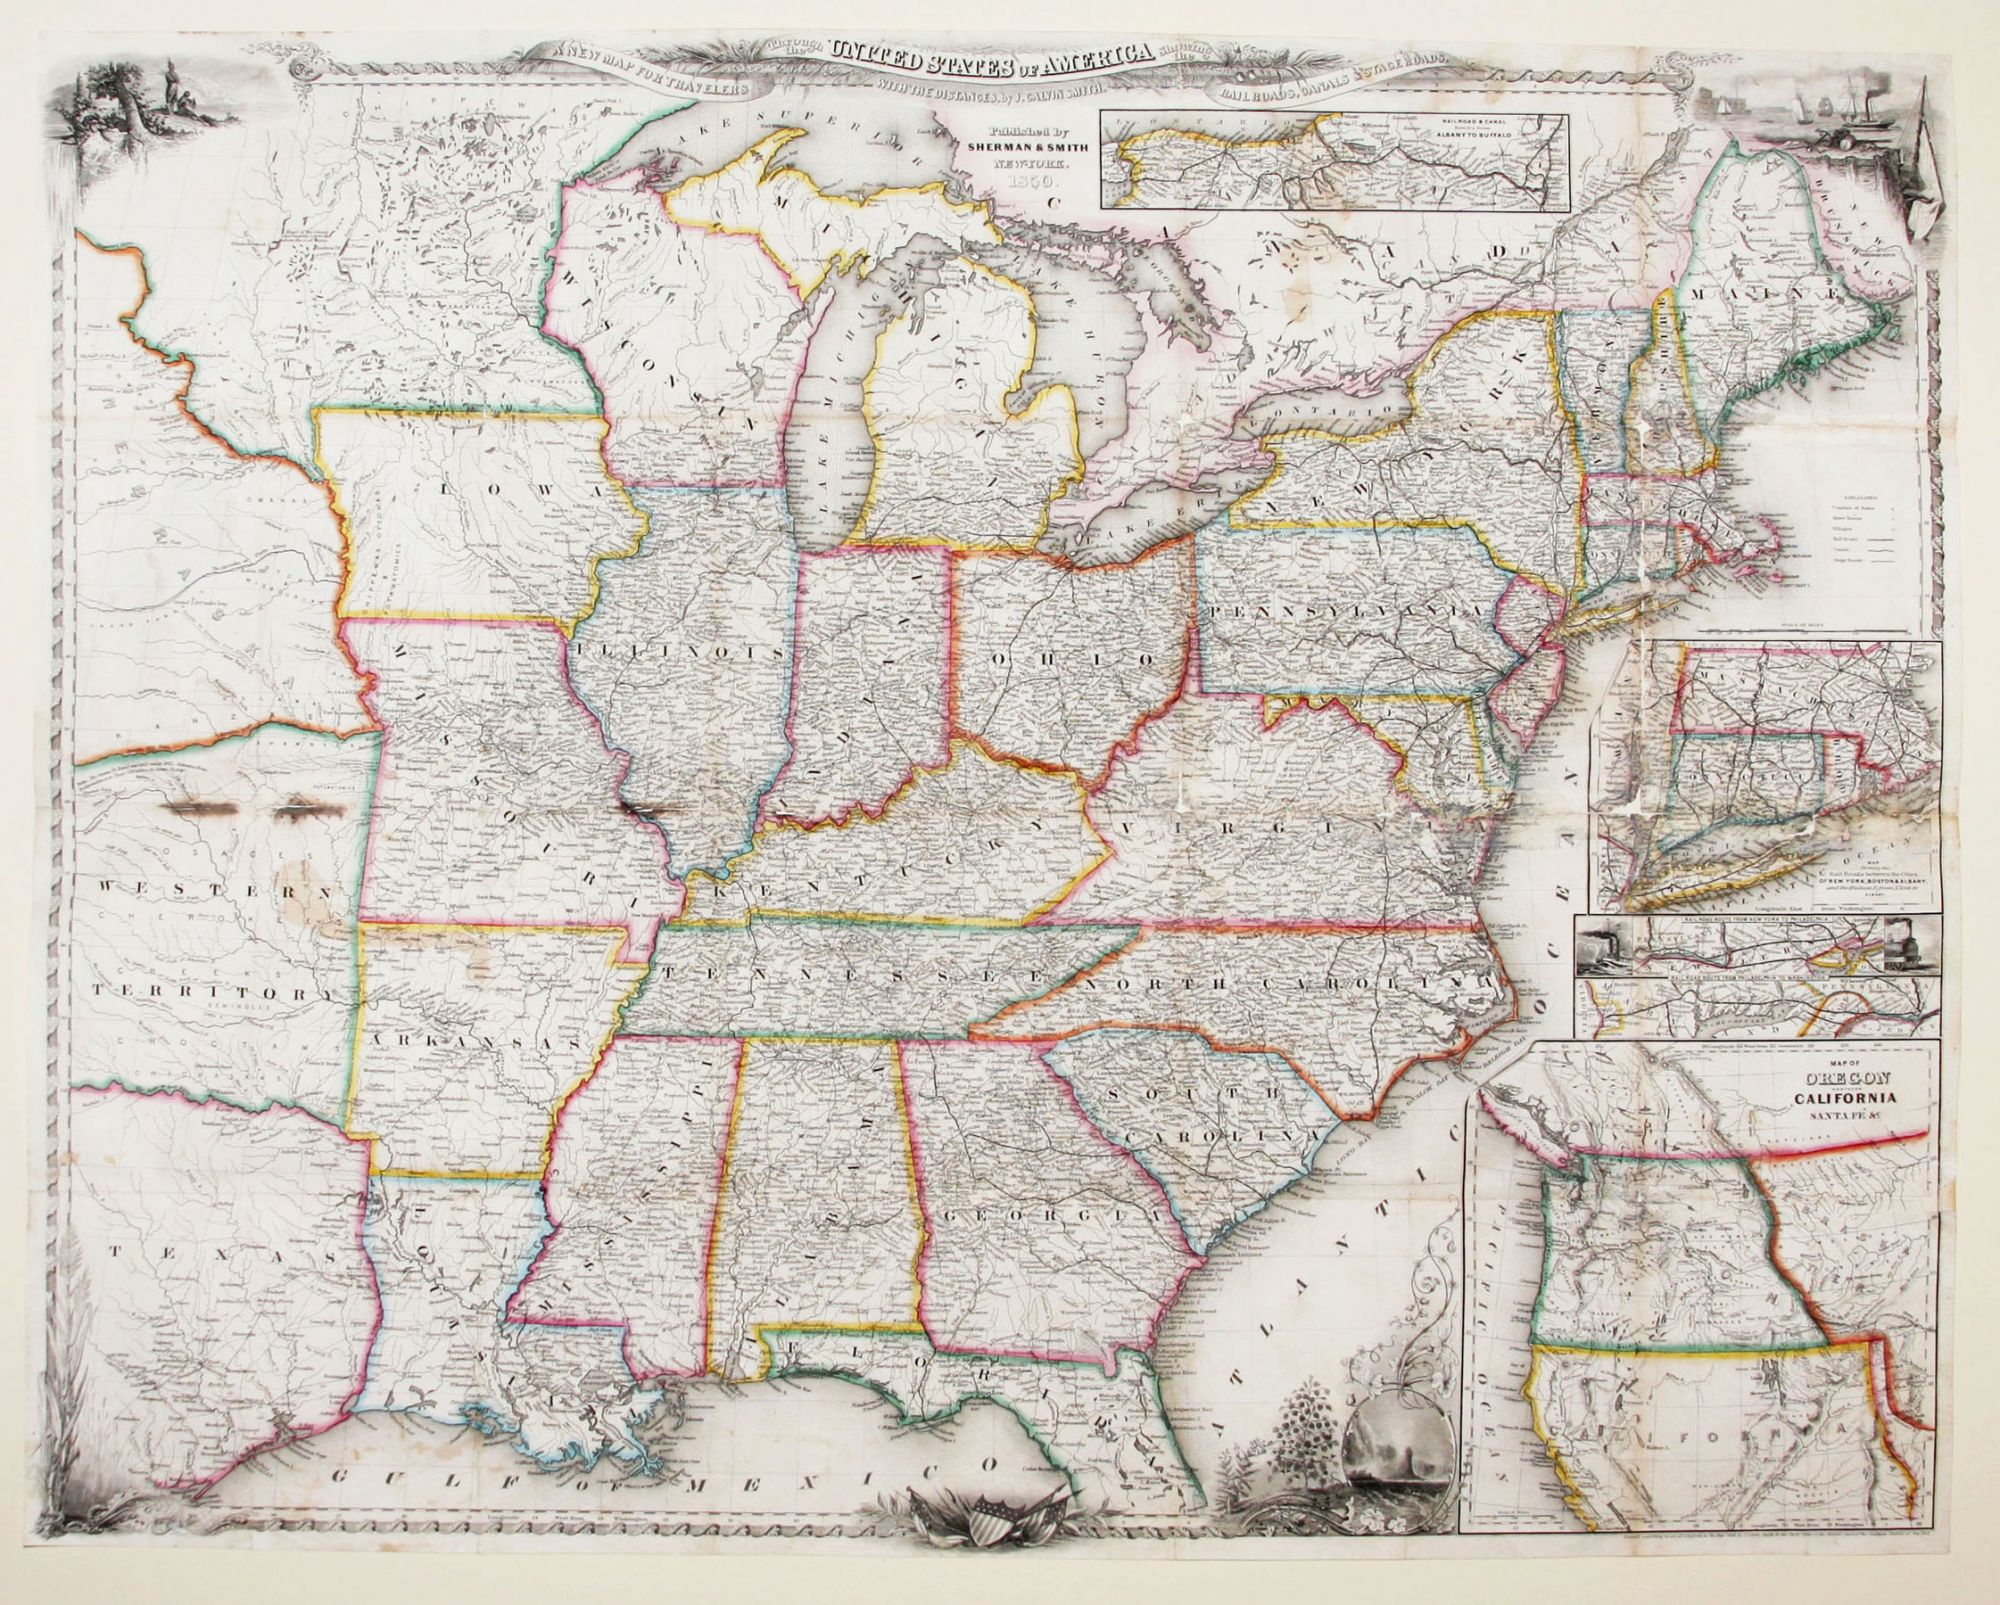 New Map Of America.A New Map For Travelers Through The United States Of America Showing The Railroads Canals Stage Roads By J Calvin Smith On Martayan Lan